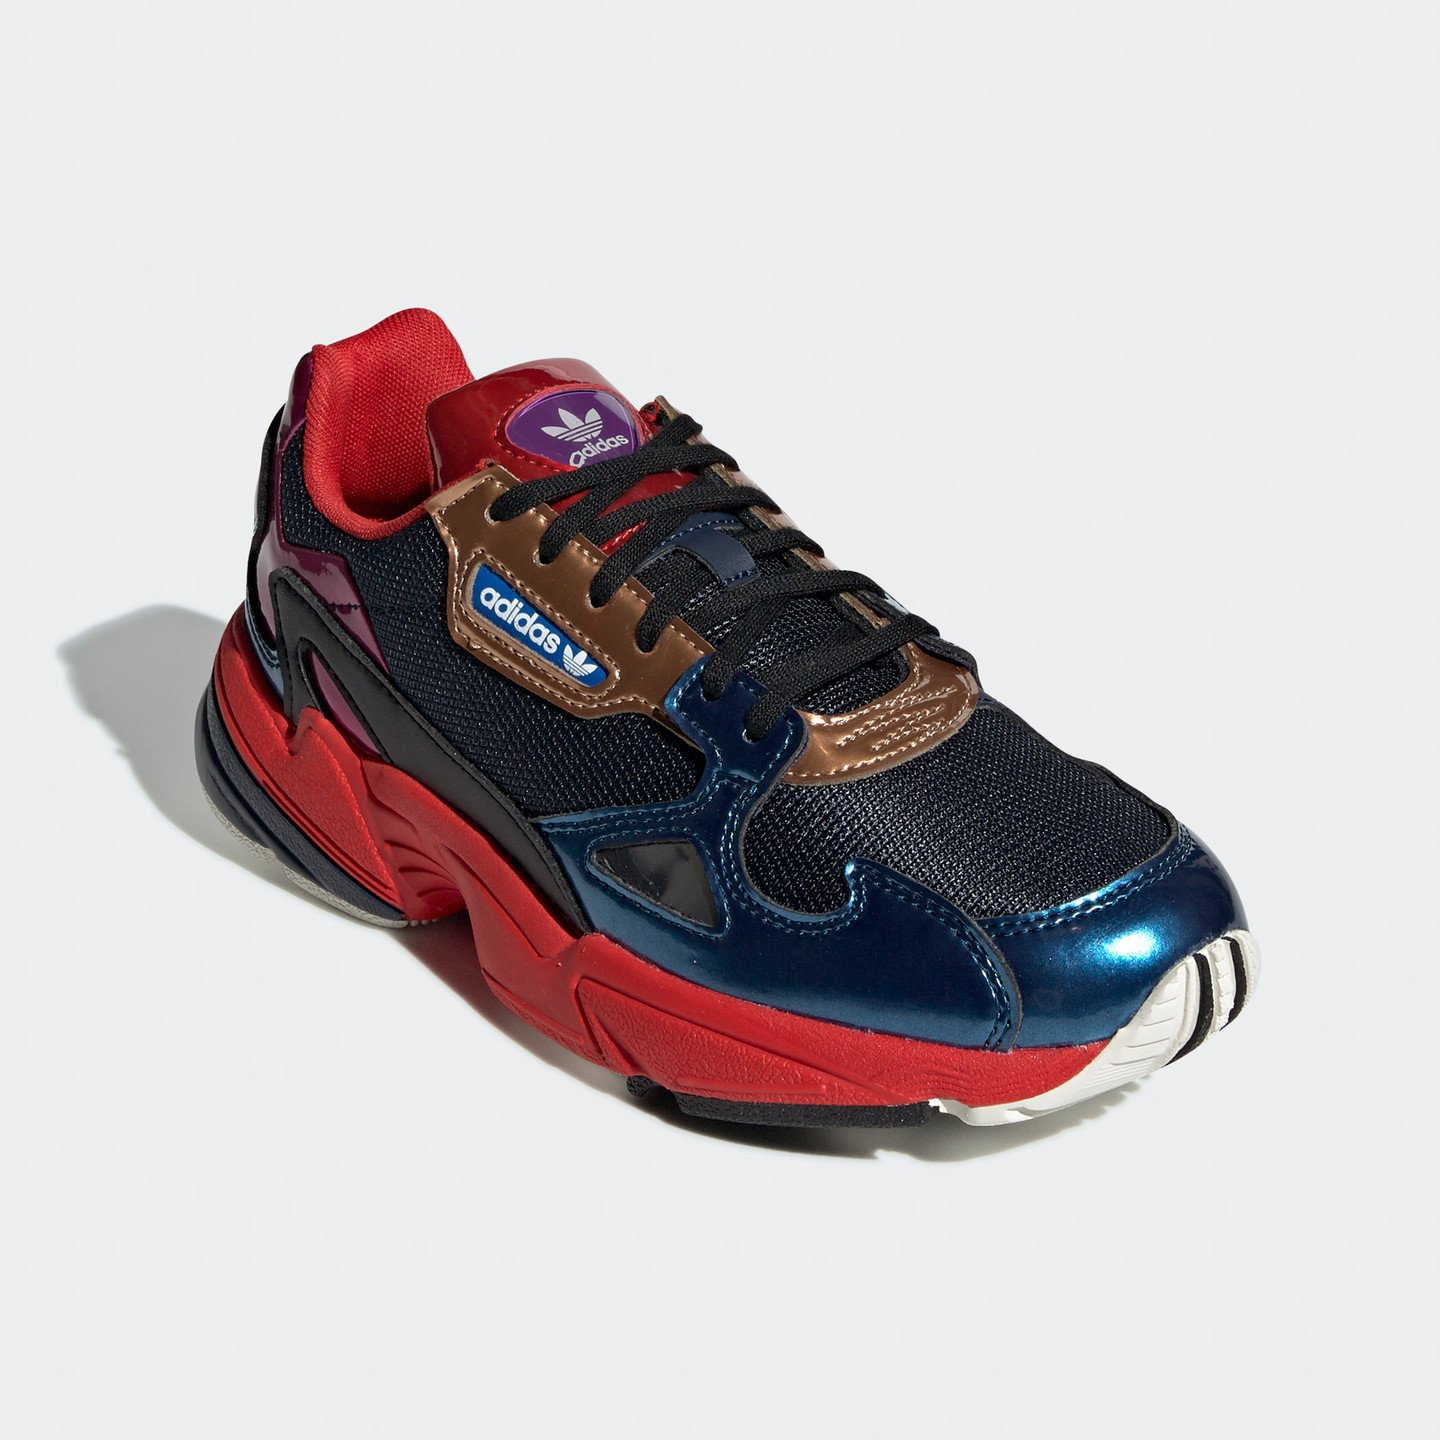 Adidas Falcon W 'Disco' Conavy / Red CG6632